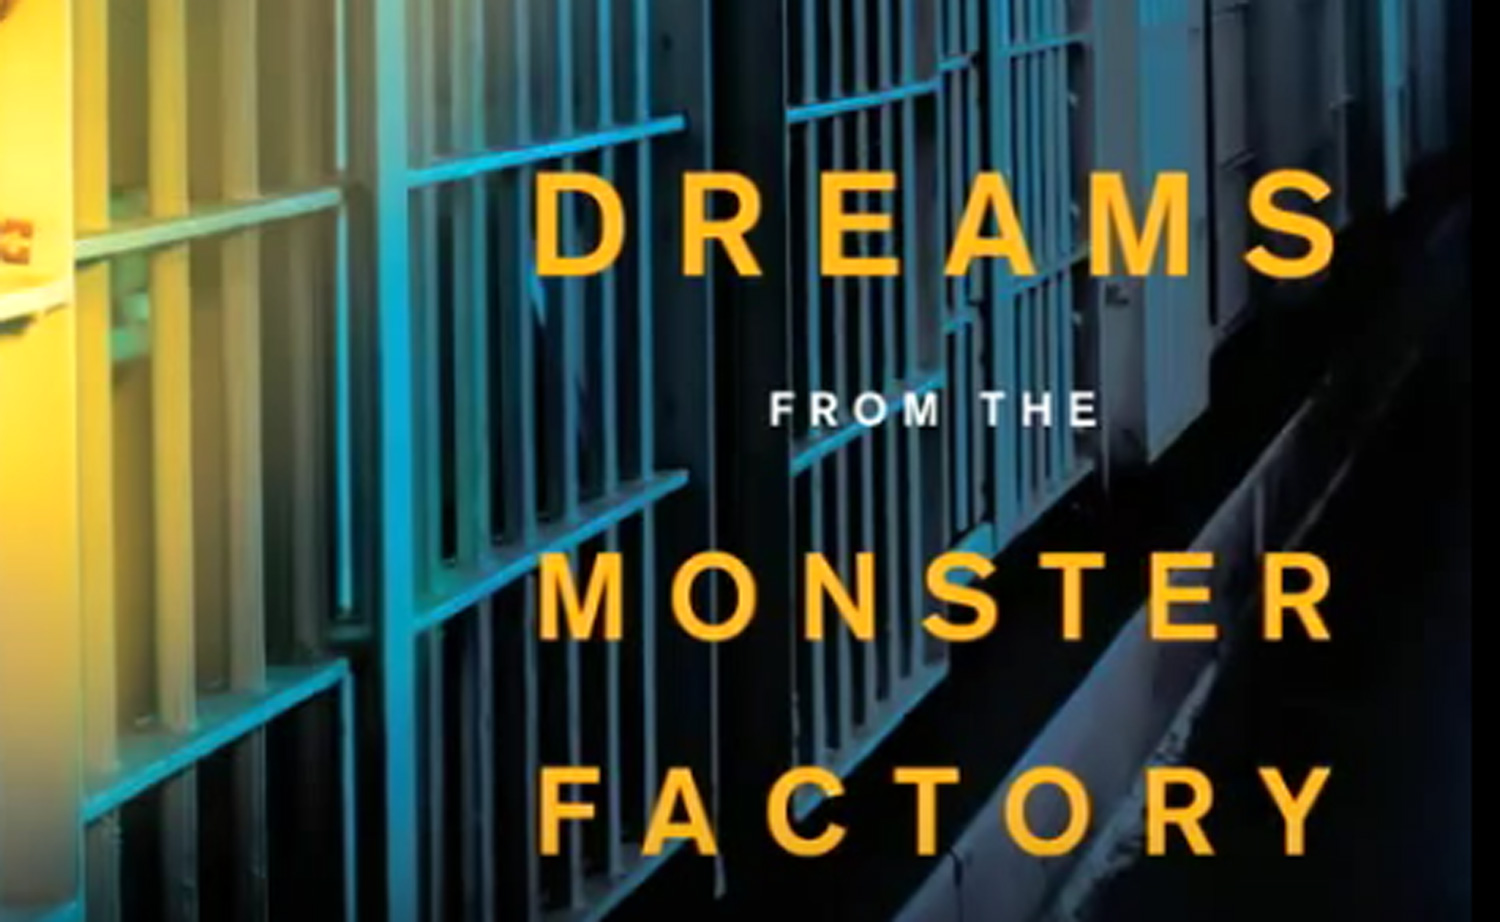 The Monster Factory - What do you get when you put cops and convicted robbers in the same room? Former wife beaters and victims of domestic violence? Republicans and Democrats? Baptist ministers and atheists? Death penalty advocates and opponents?